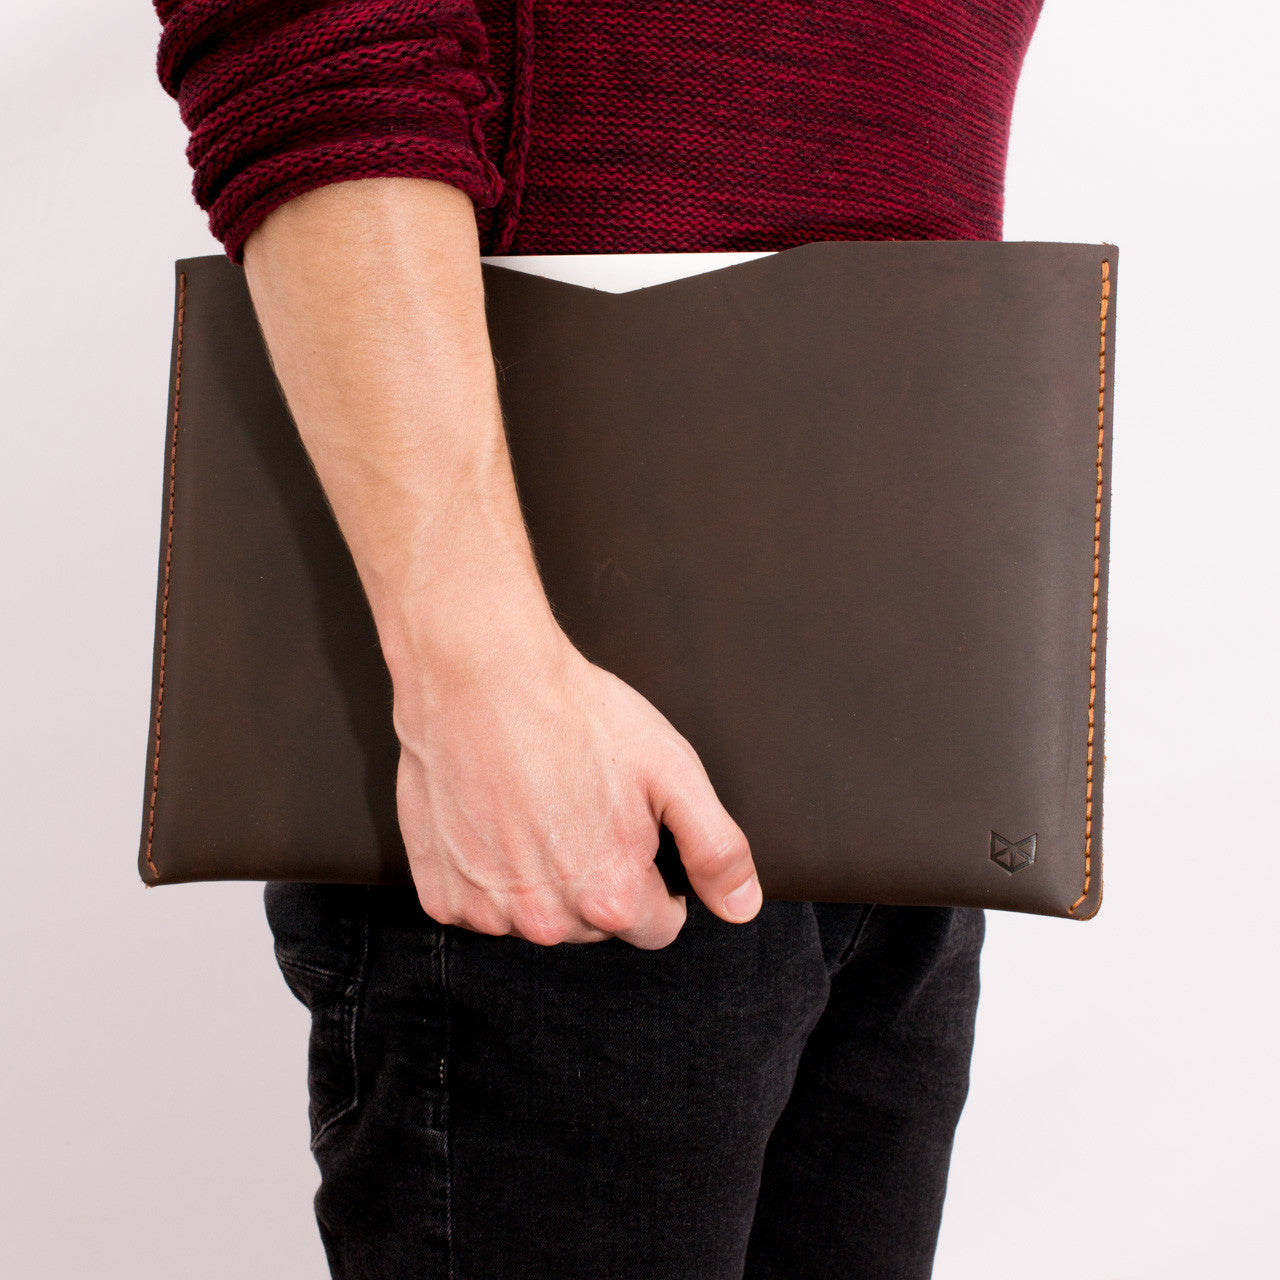 BASIC // MARRON: Leather Lenovo Yoga Thinkpad by Capra Leather